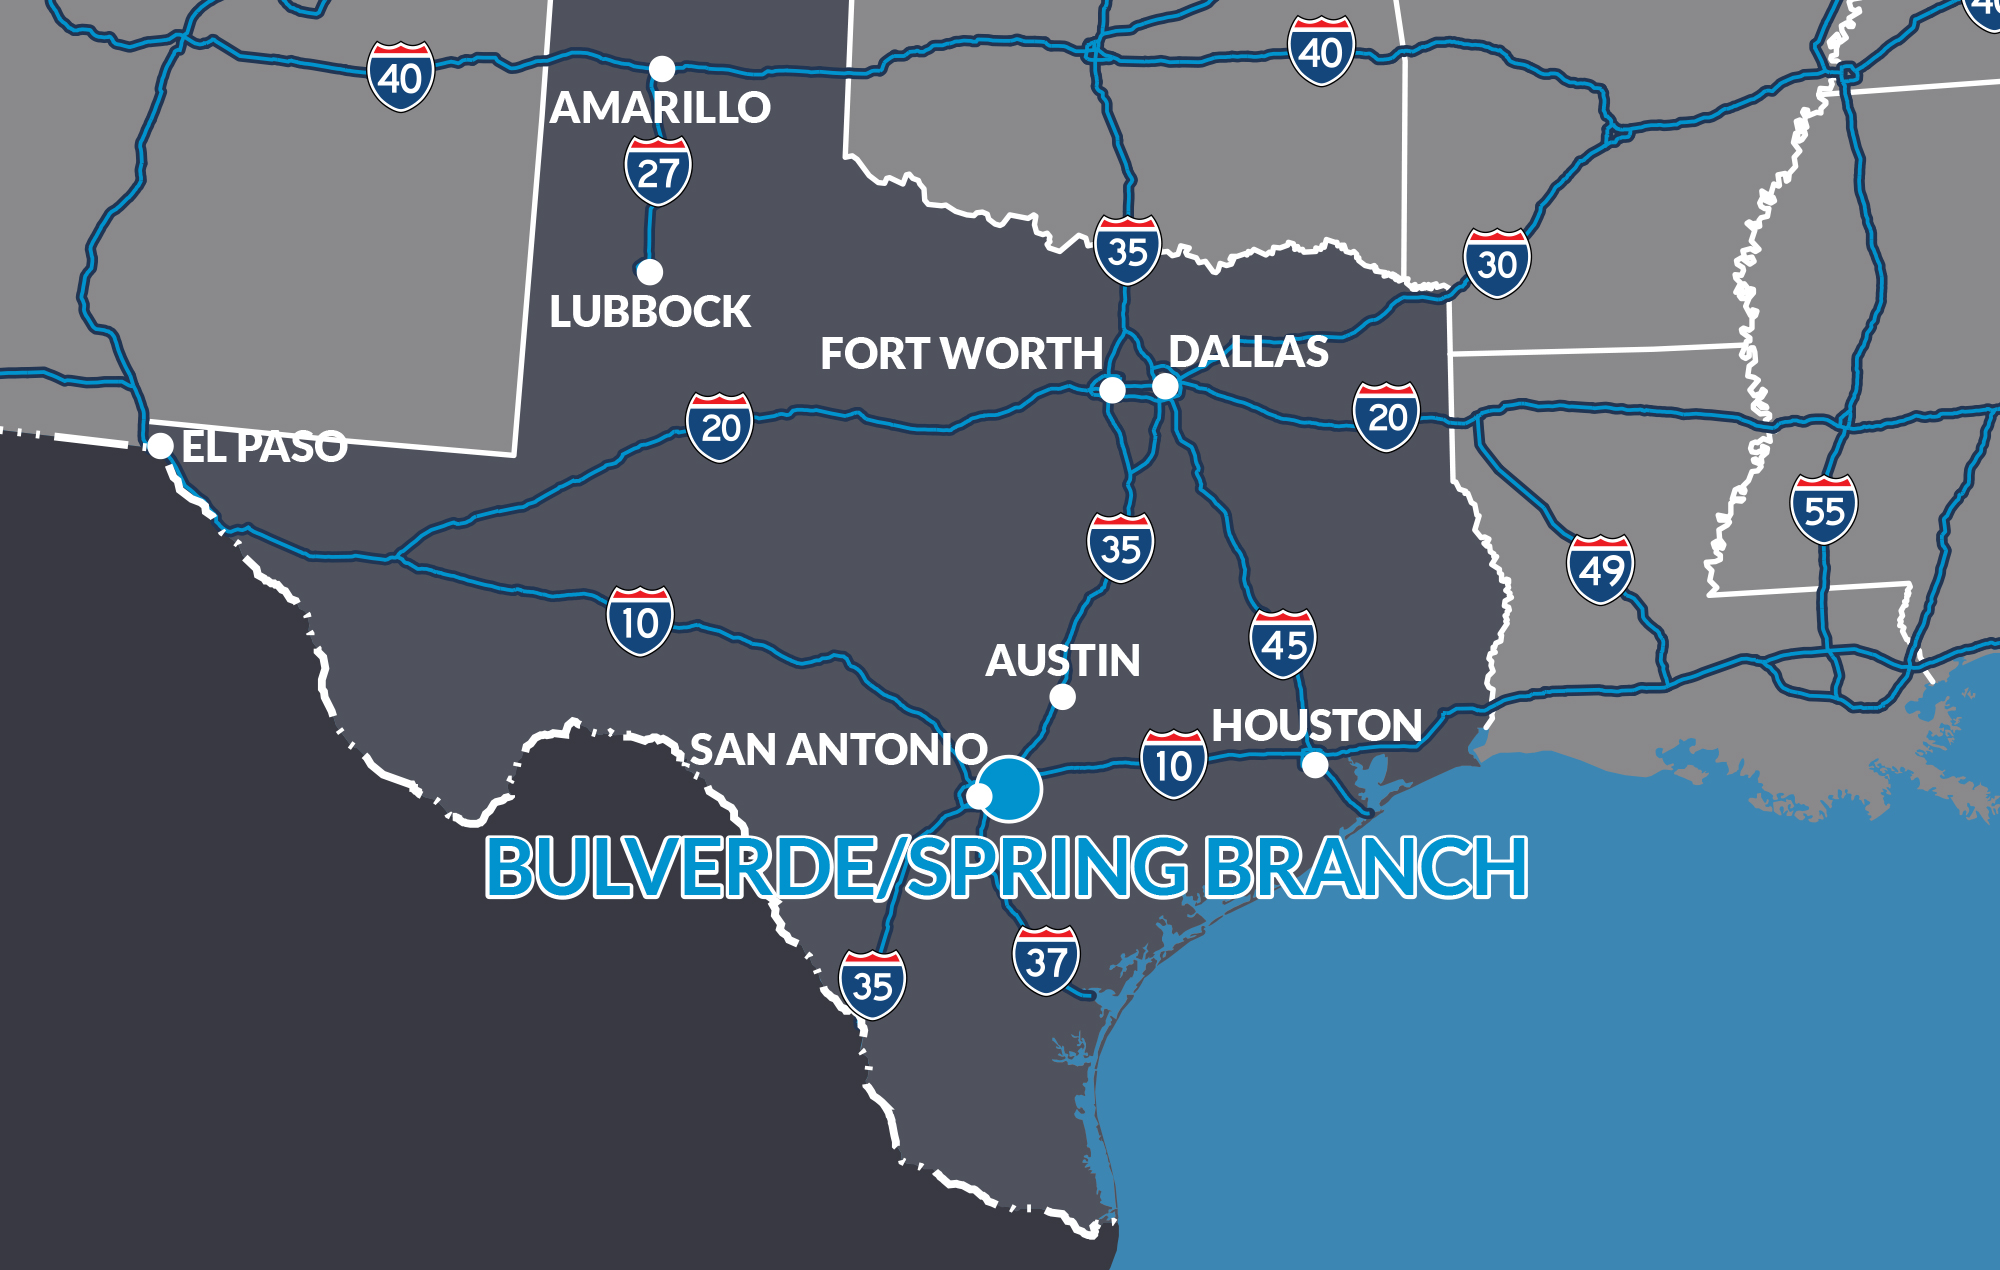 Map Of Texas Hill Country Cities.Strategic Location Bulverde Spring Branch Texas Edf